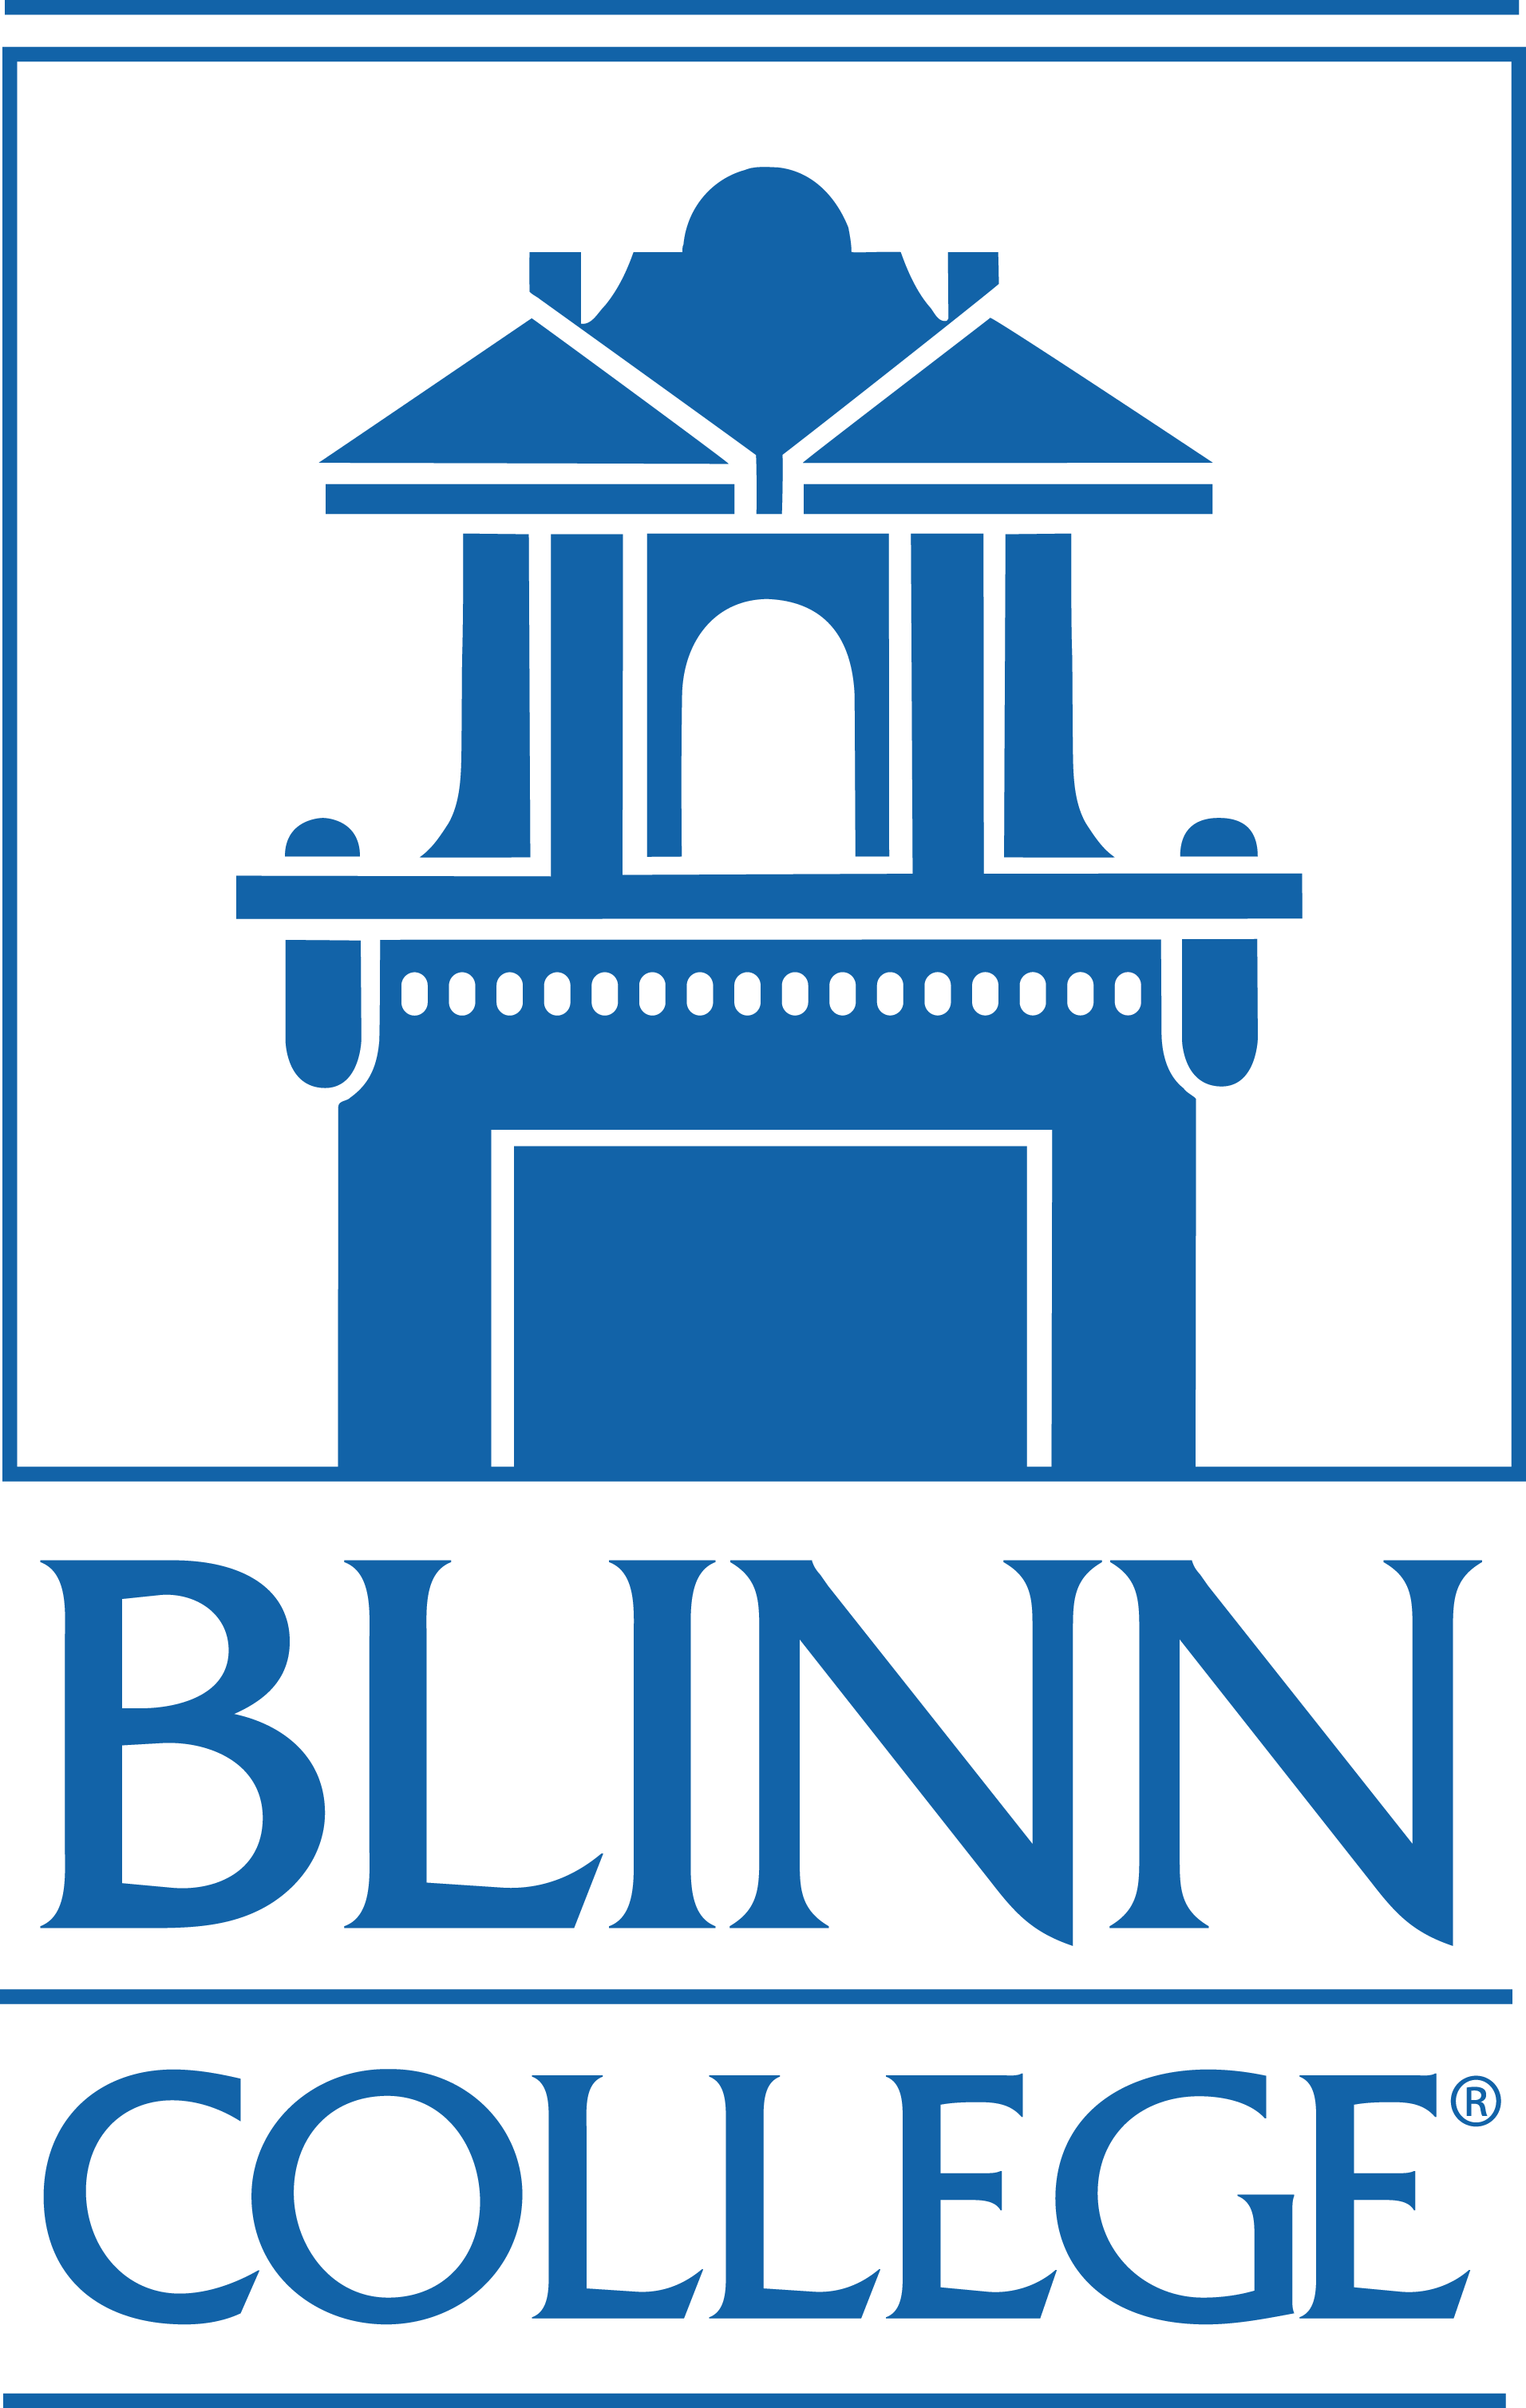 Blinn College image